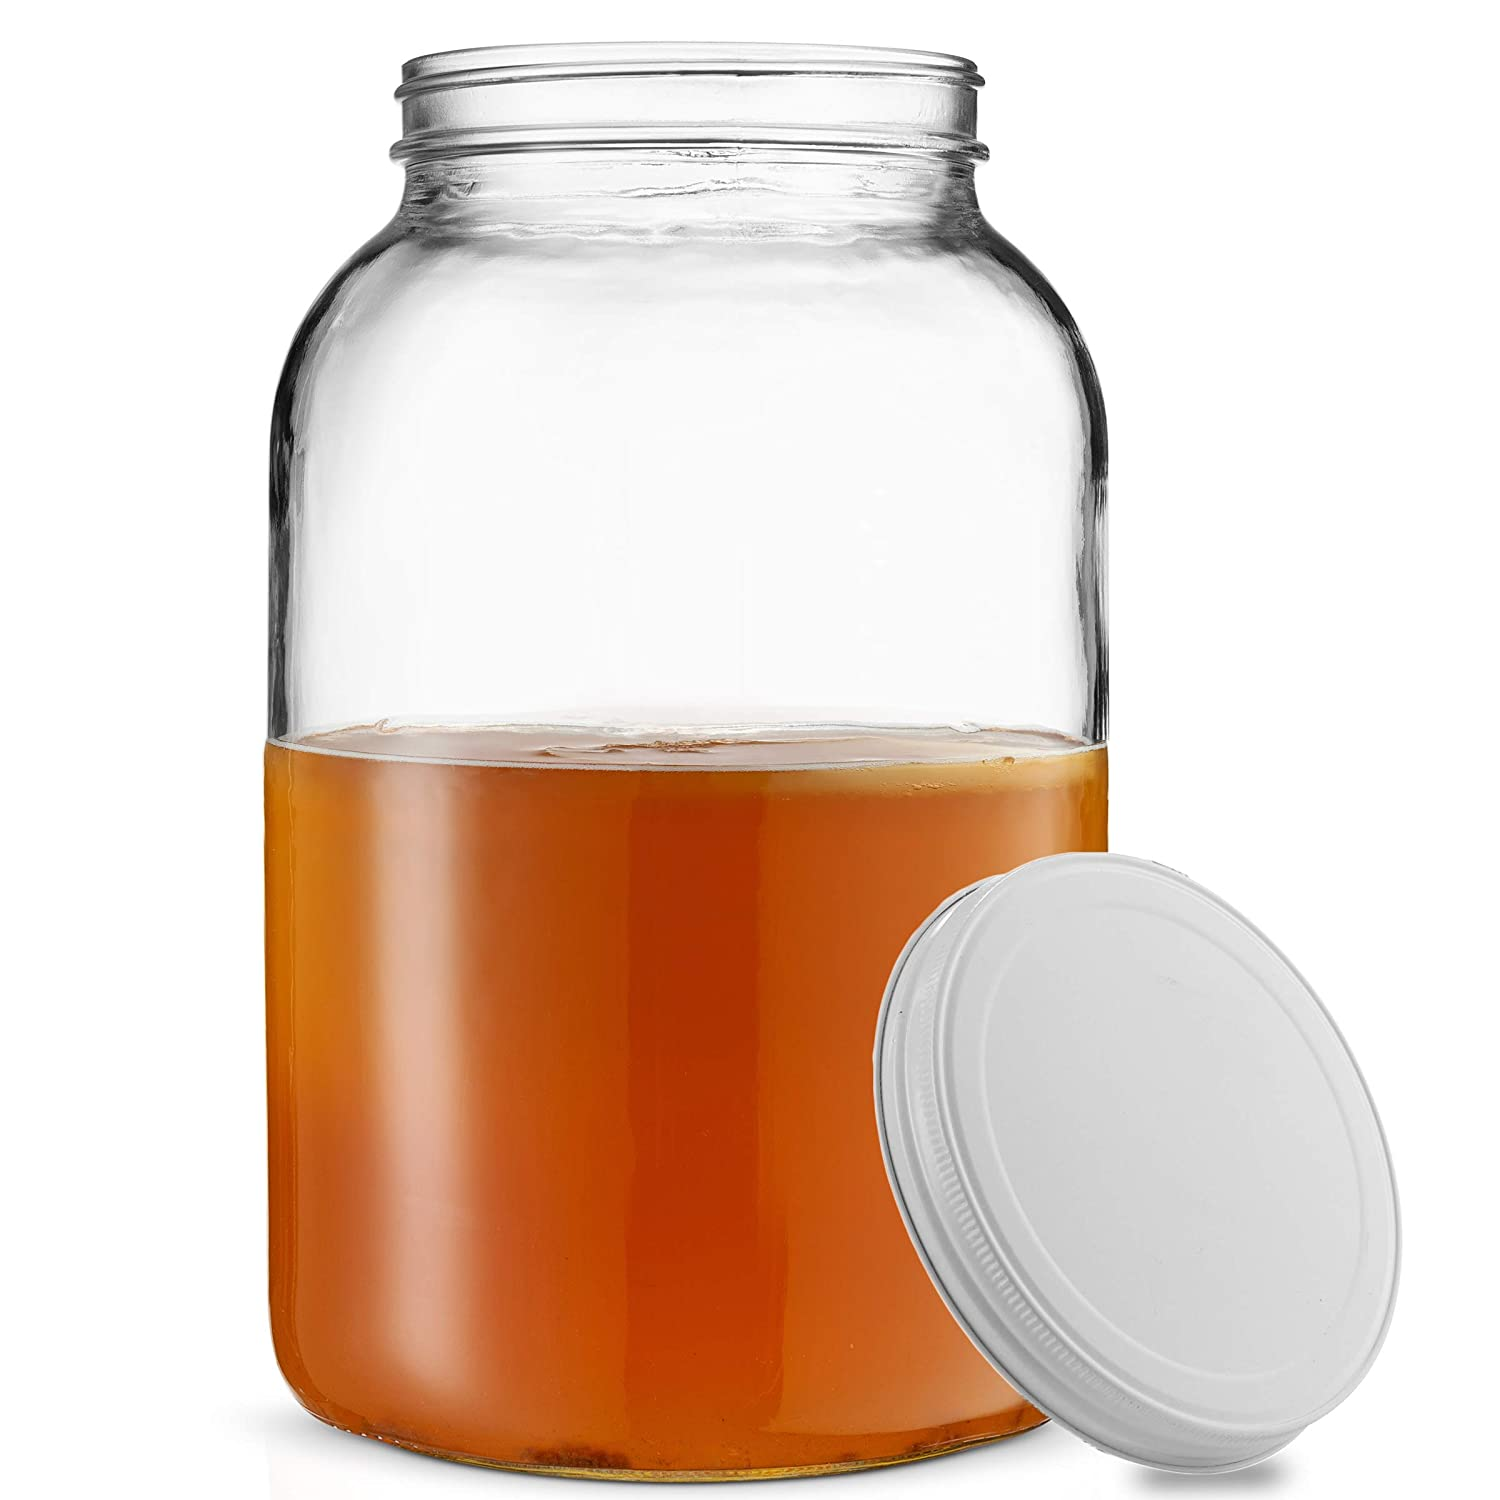 Paksh Novelty 1-Gallon Glass Jar Wide Mouth with Airtight Metal Lid - USDA Approved BPA-Free Dishwasher Safe Mason Jar for Fermenting, Kombucha, Kefir, Storing and Canning Uses, Clear